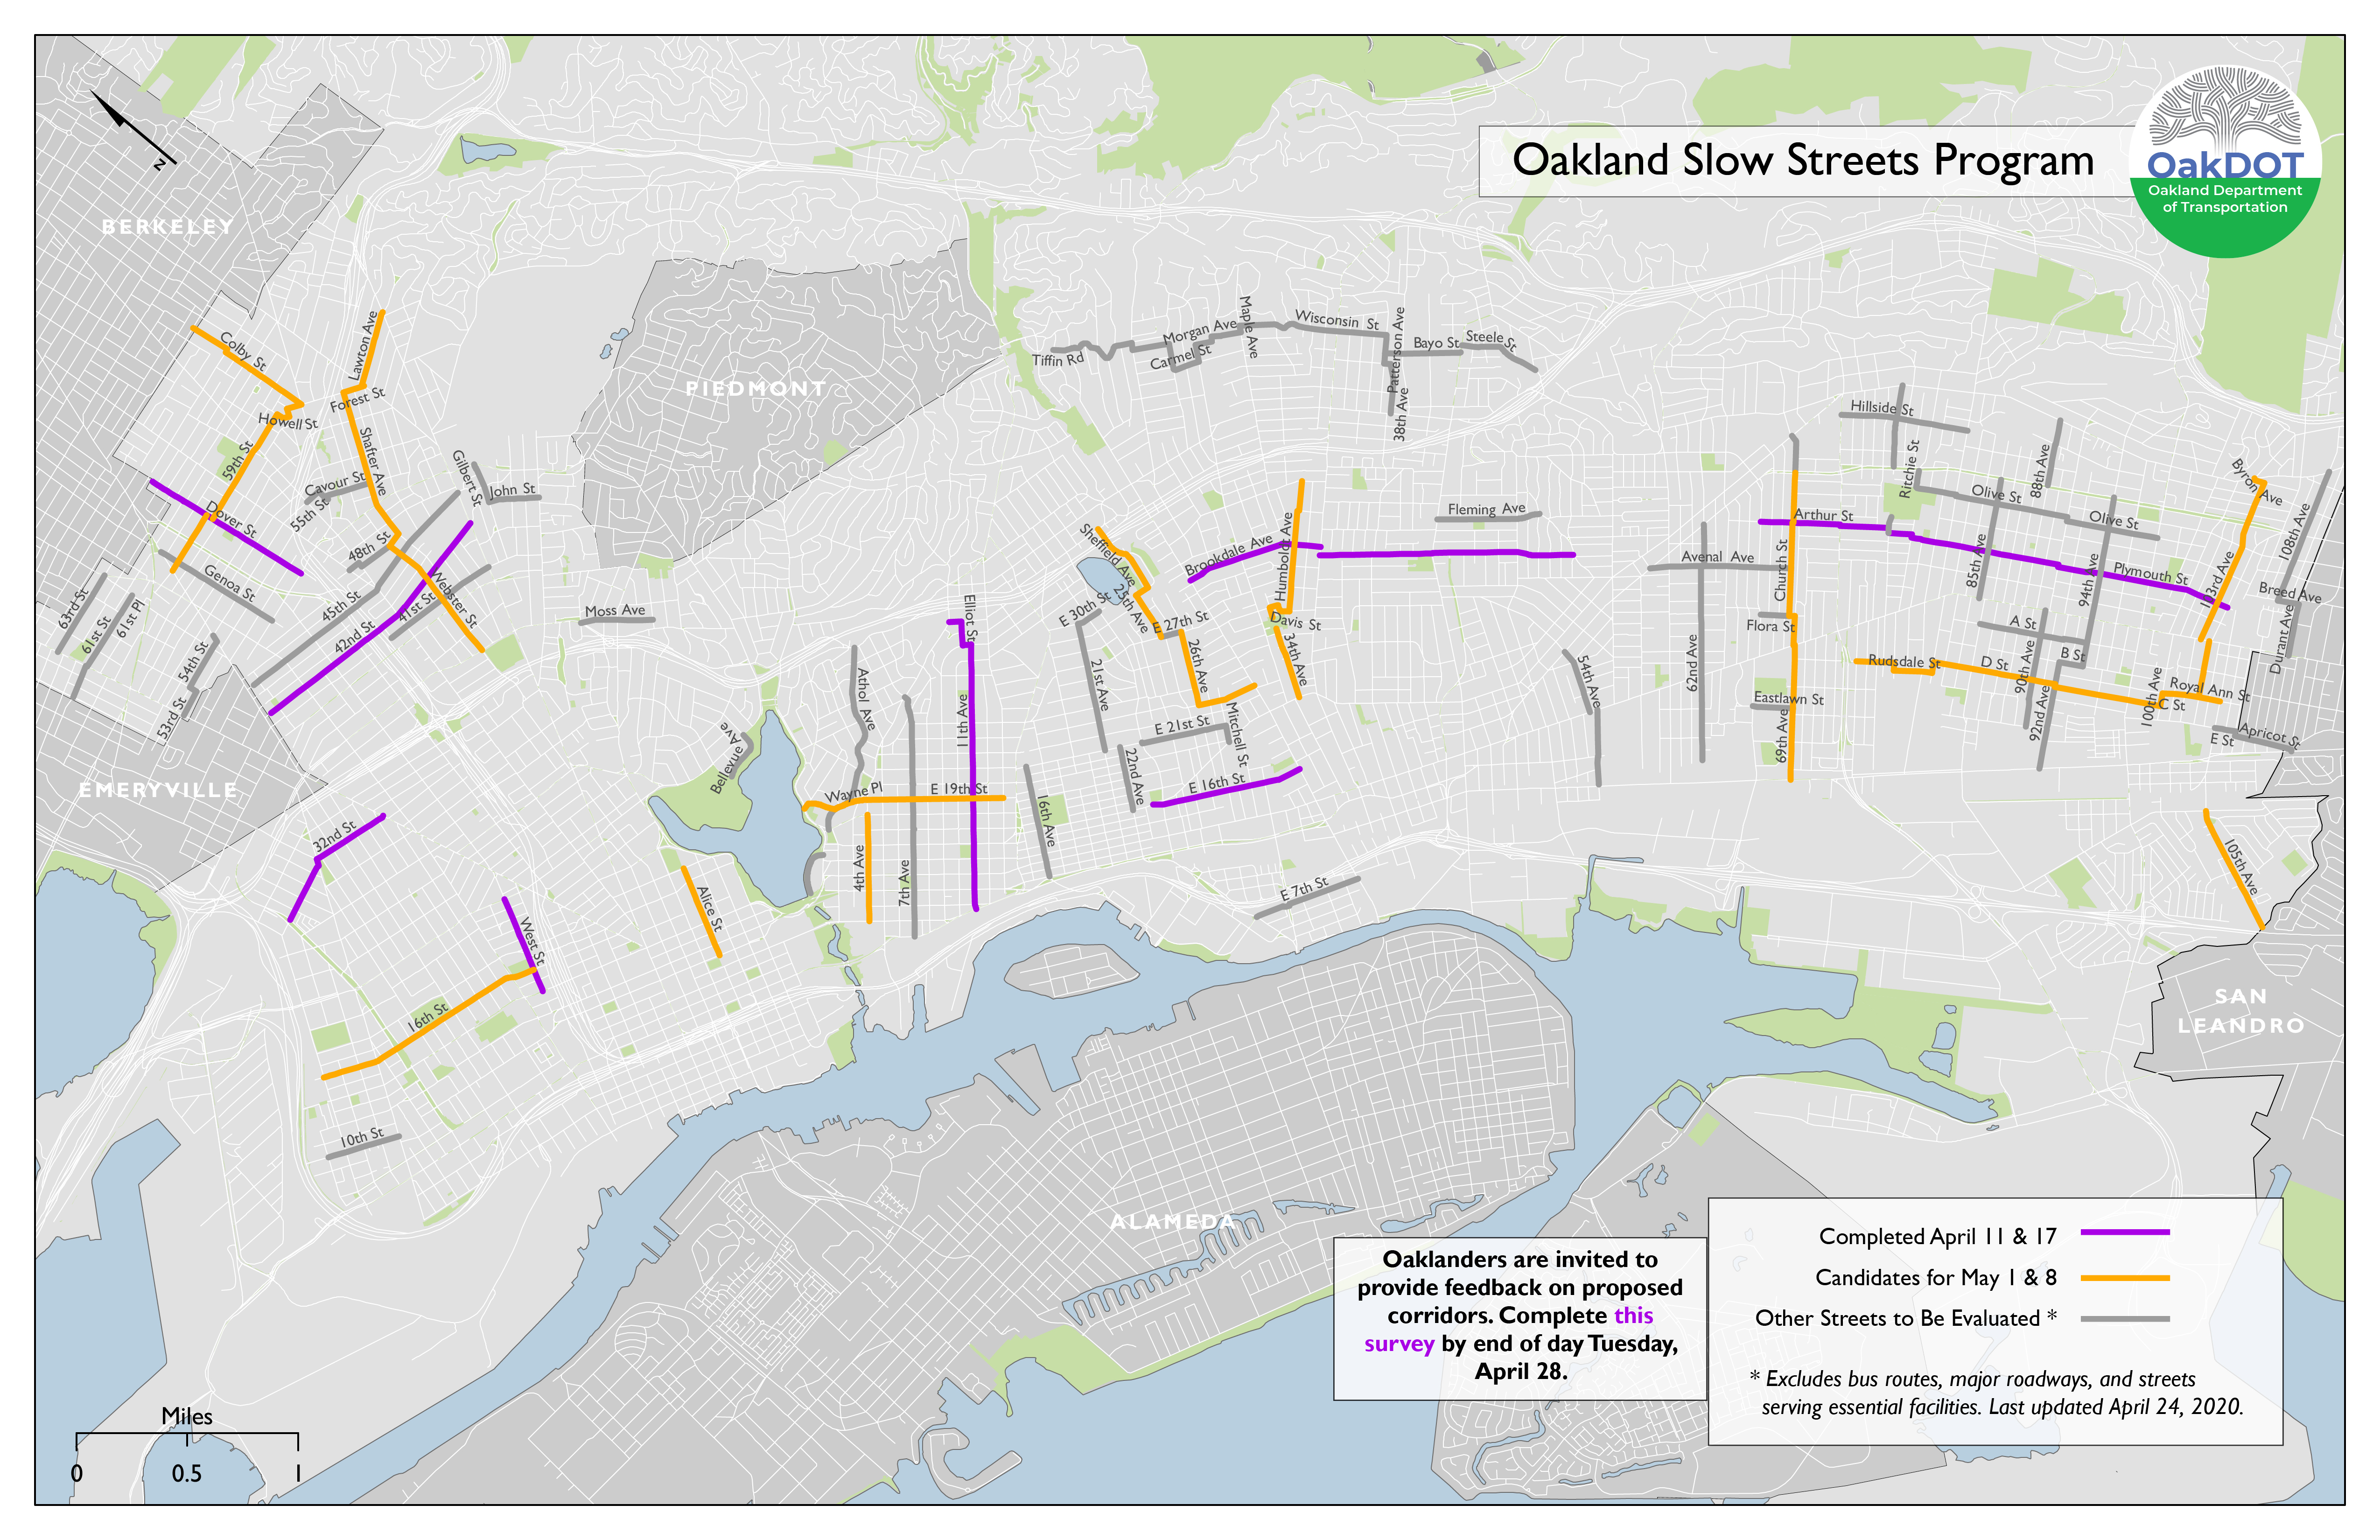 Oakland Slow Streets program map updated April 24, 2020